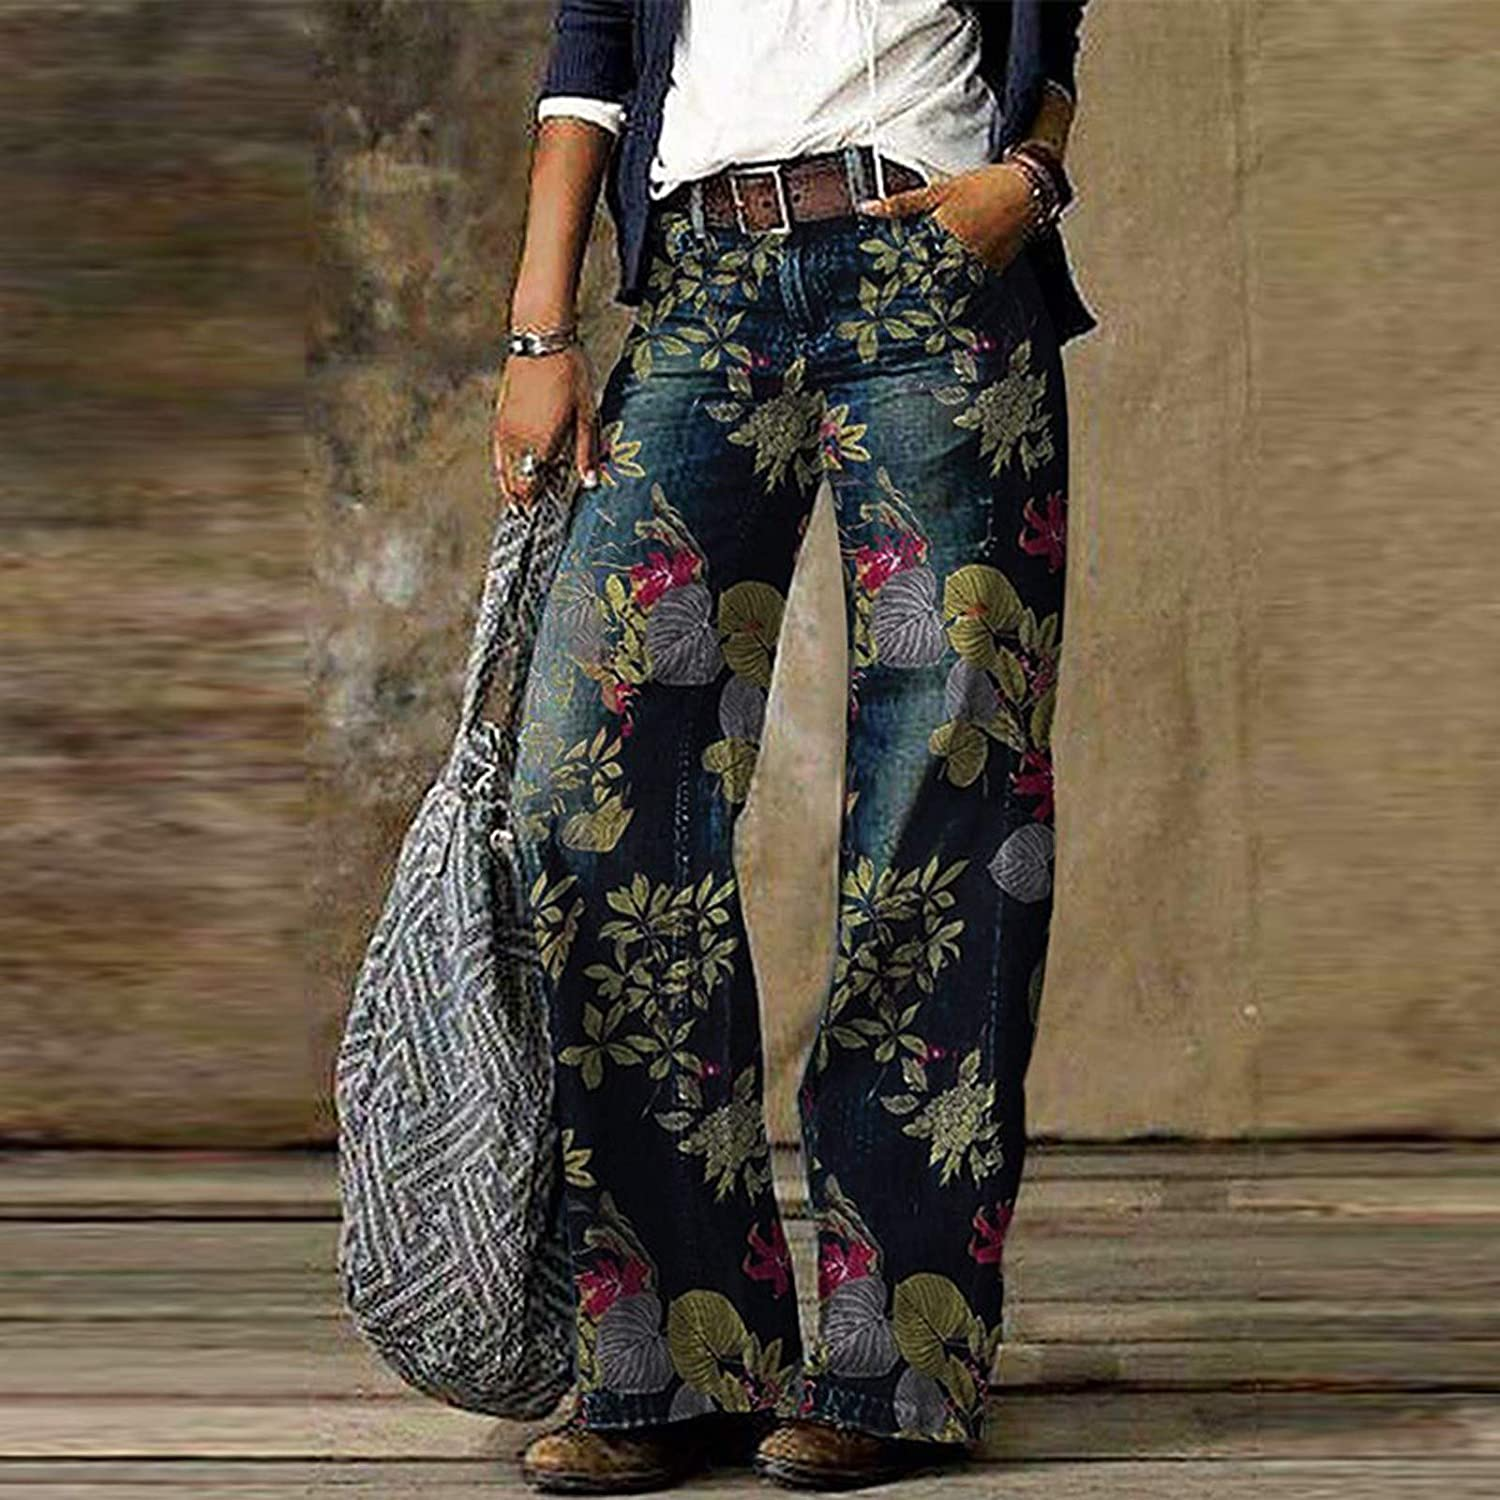 Hesxuno Valentines Day Gifts Women's Comfy Cute Flower Printed Casual Trousers Pants Straight Loose Jeans